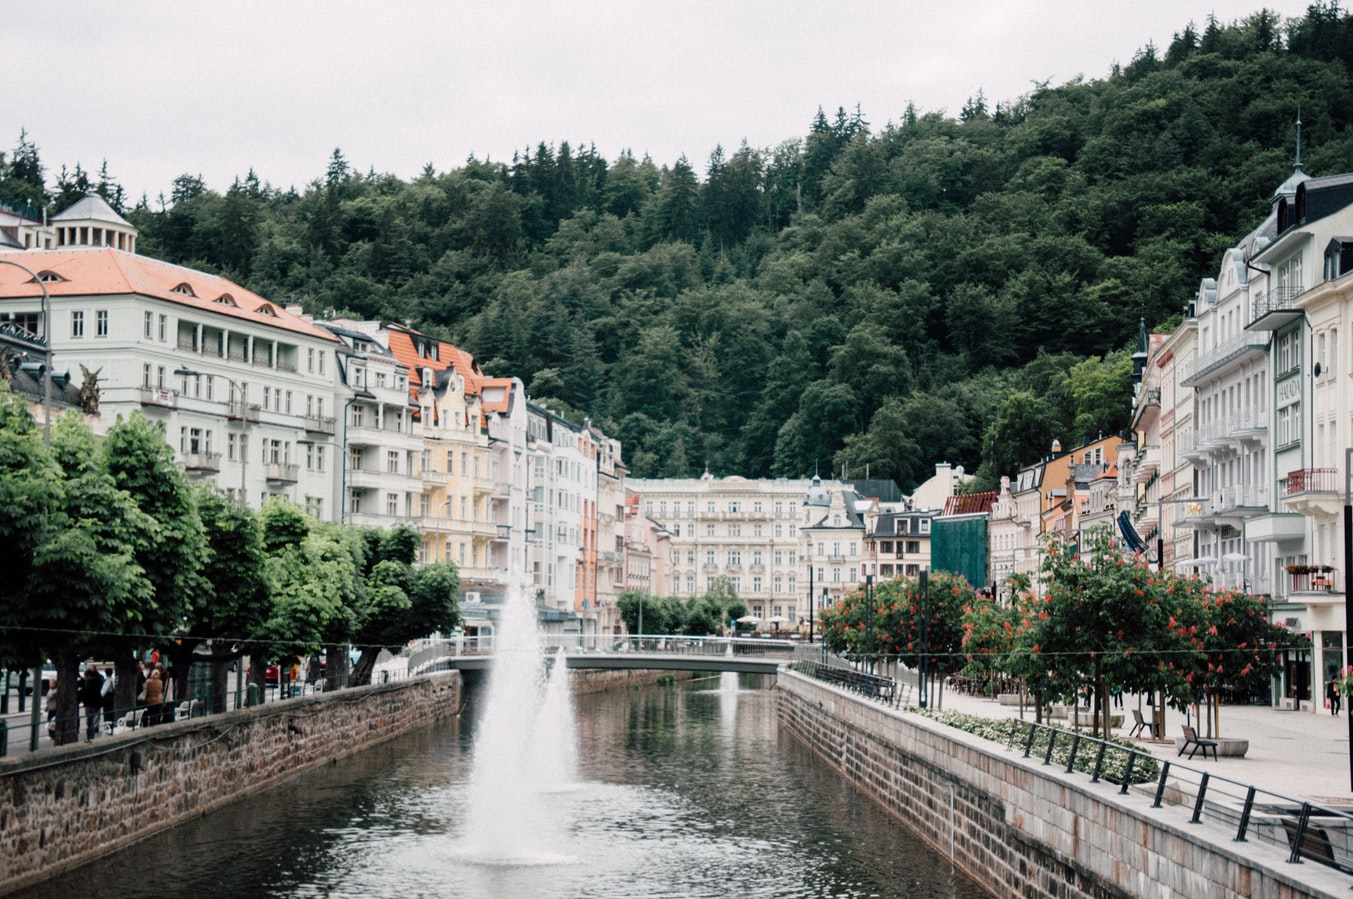 Karlovy Vary in the Czech Republic, white and pastel colored houses near a river